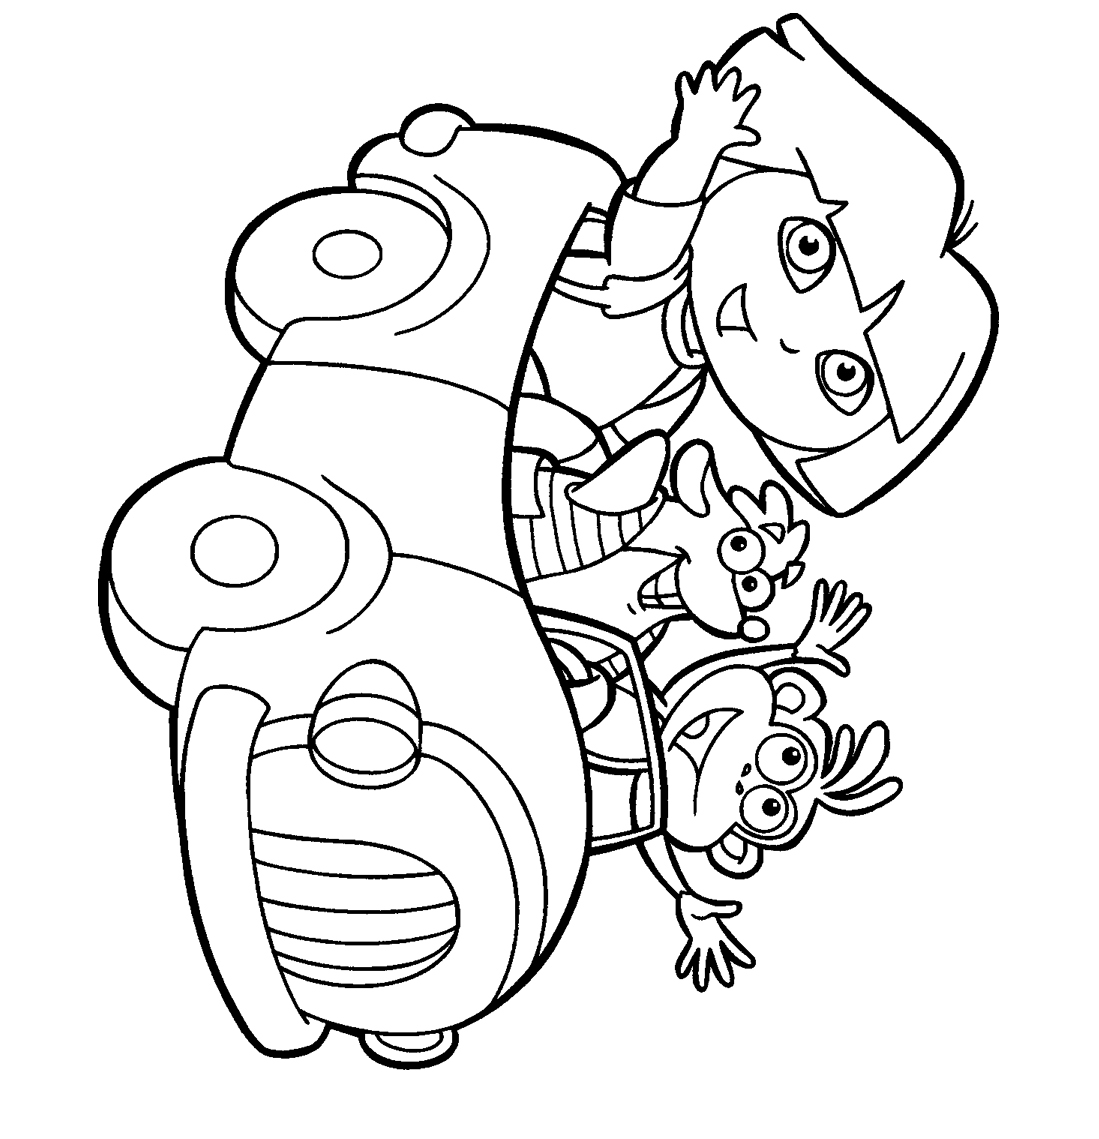 Dora The Explorer Coloring Pages 5 Coloring Kids